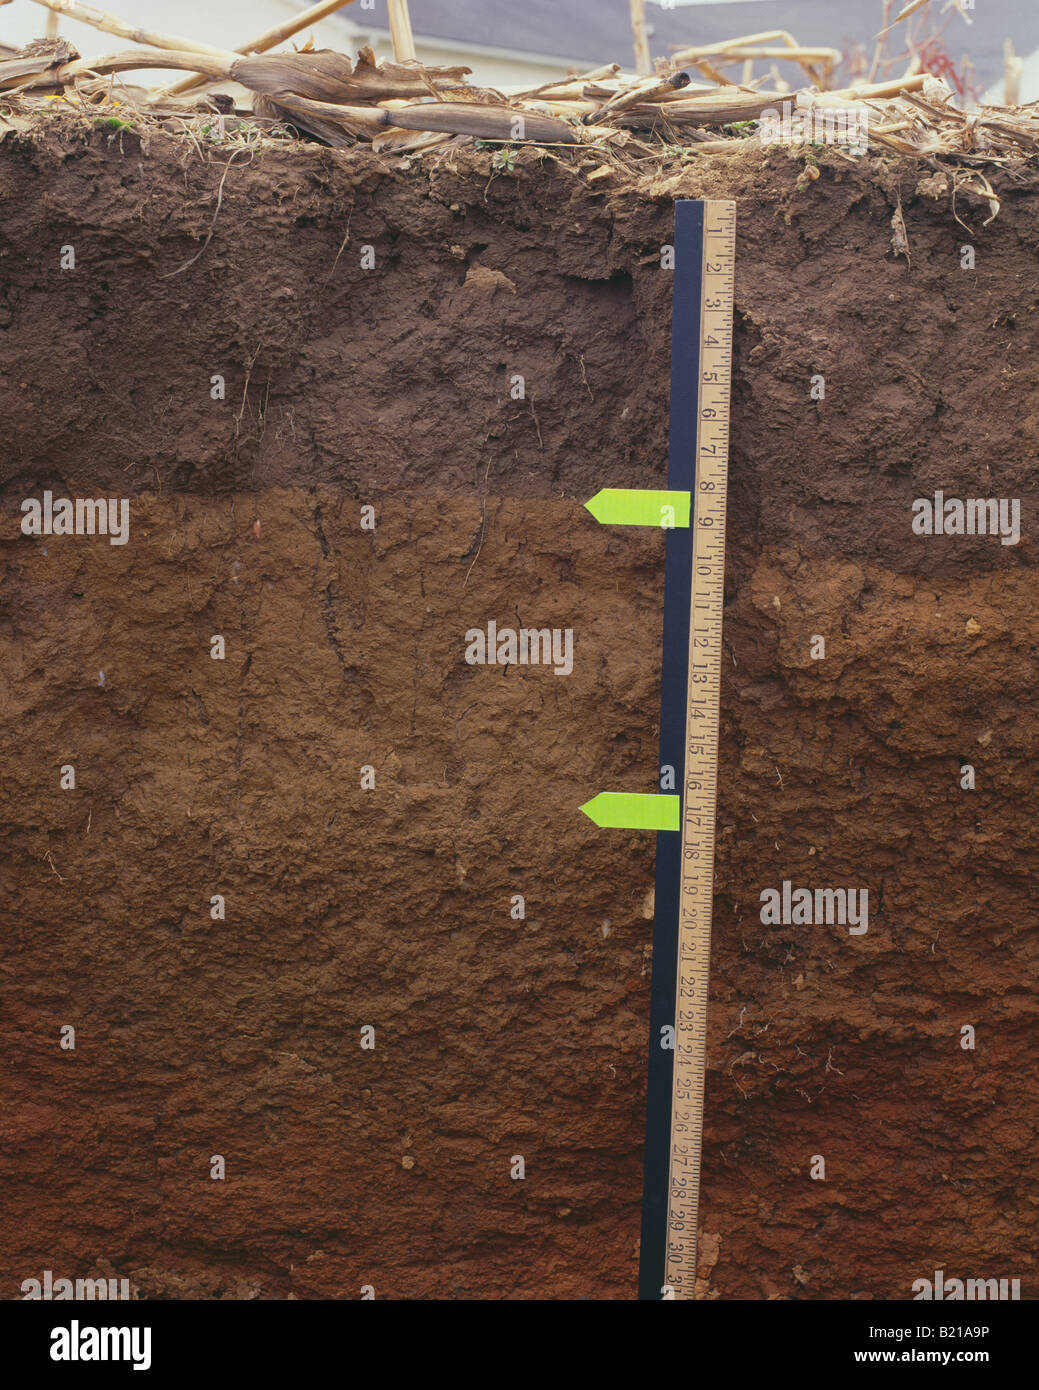 Soil profile monolith stock photo royalty free image for Soil king productions